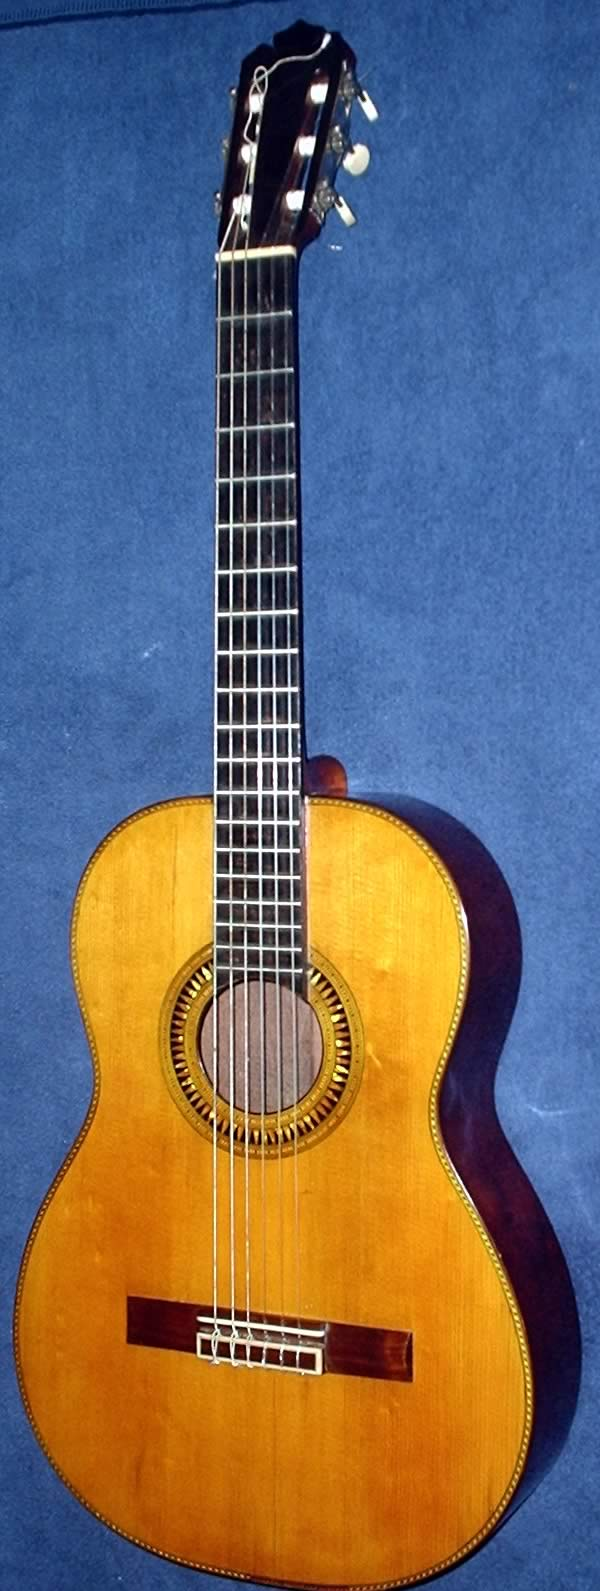 Guitarra Anónima - Anonymous Guitar - 1930 decade